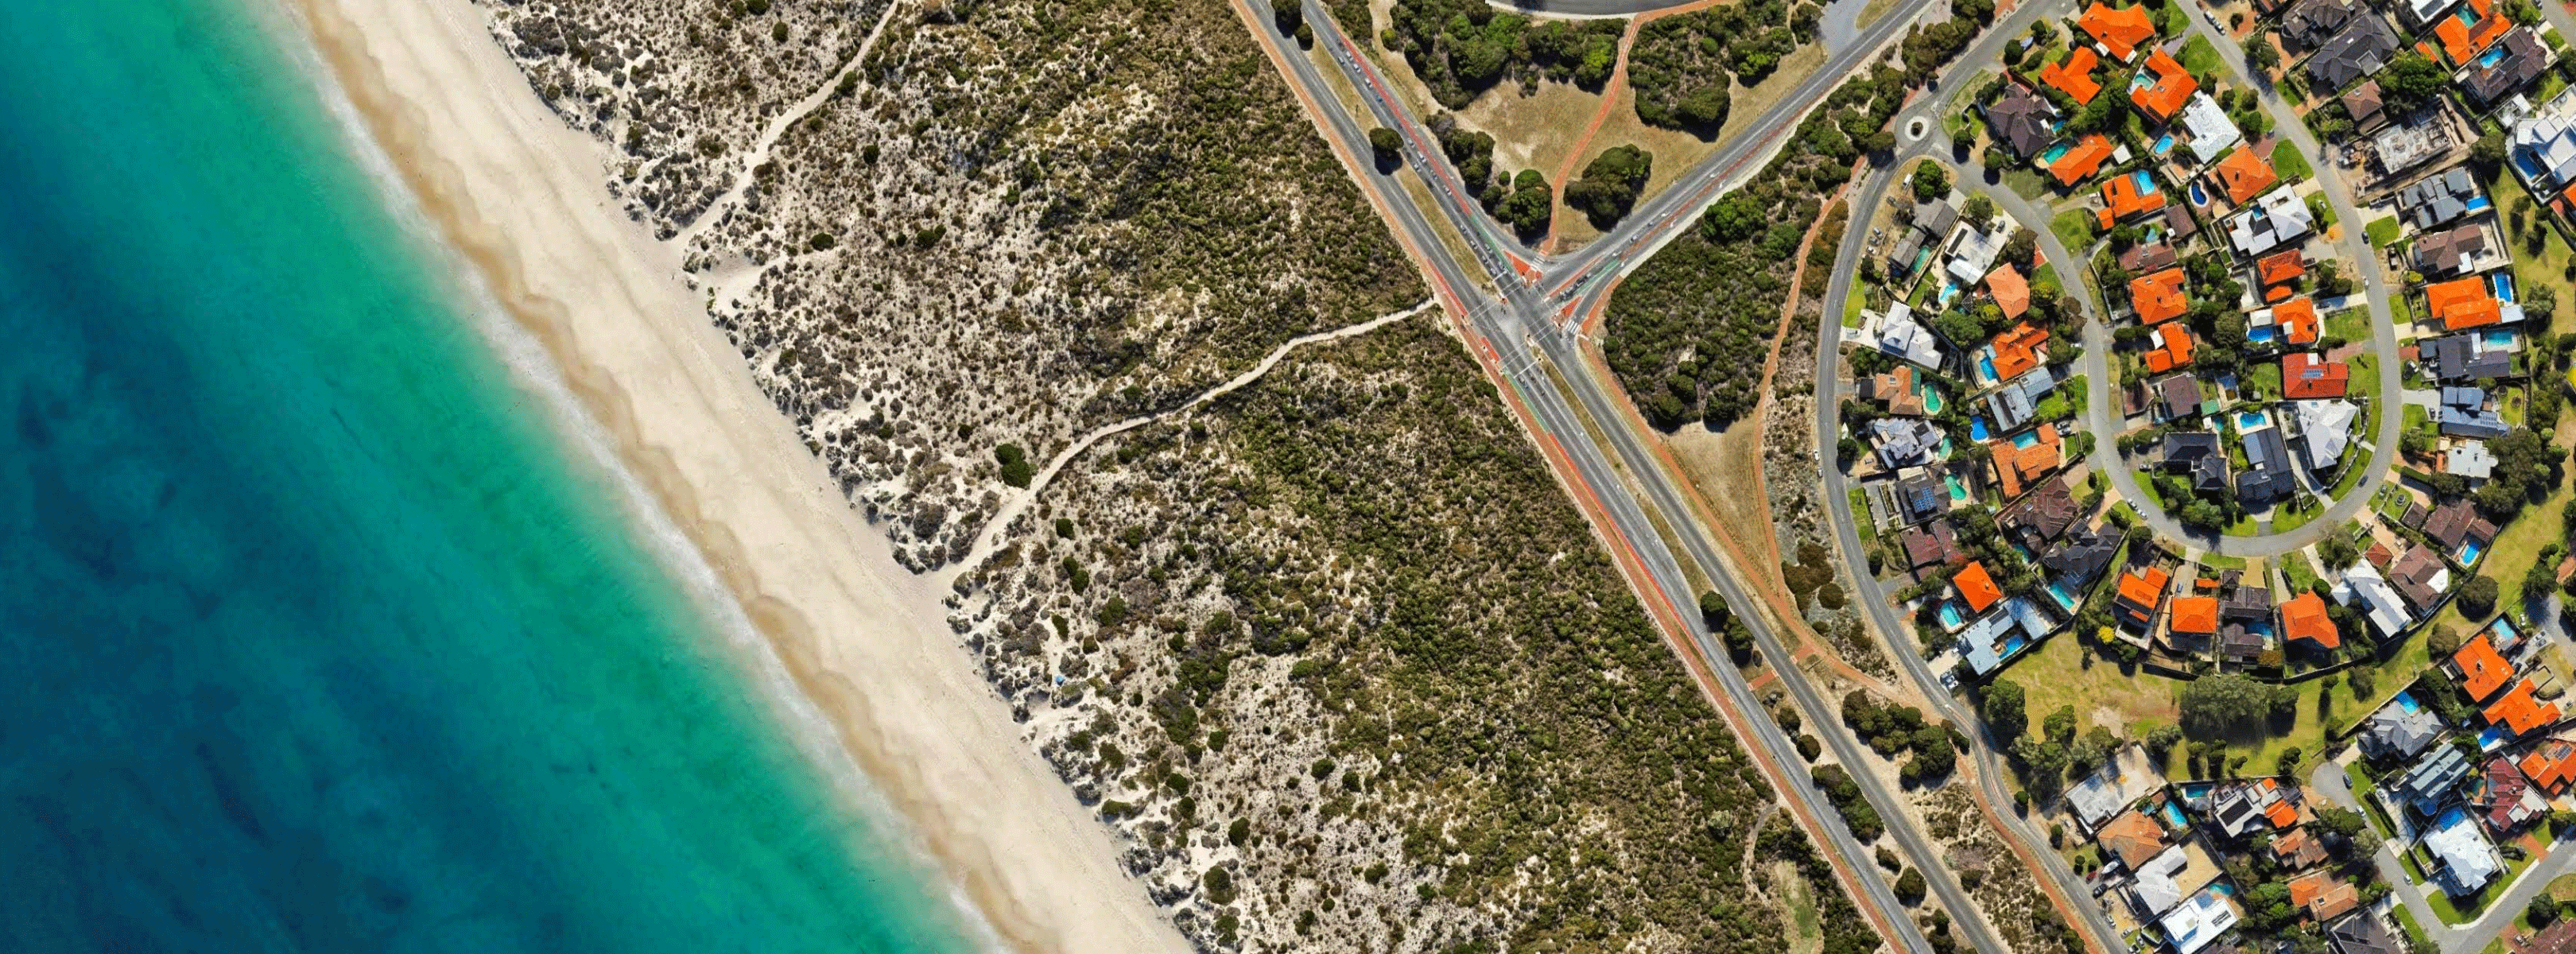 Street Smarts: Implementing NextGen Traffic Solutions with Drones